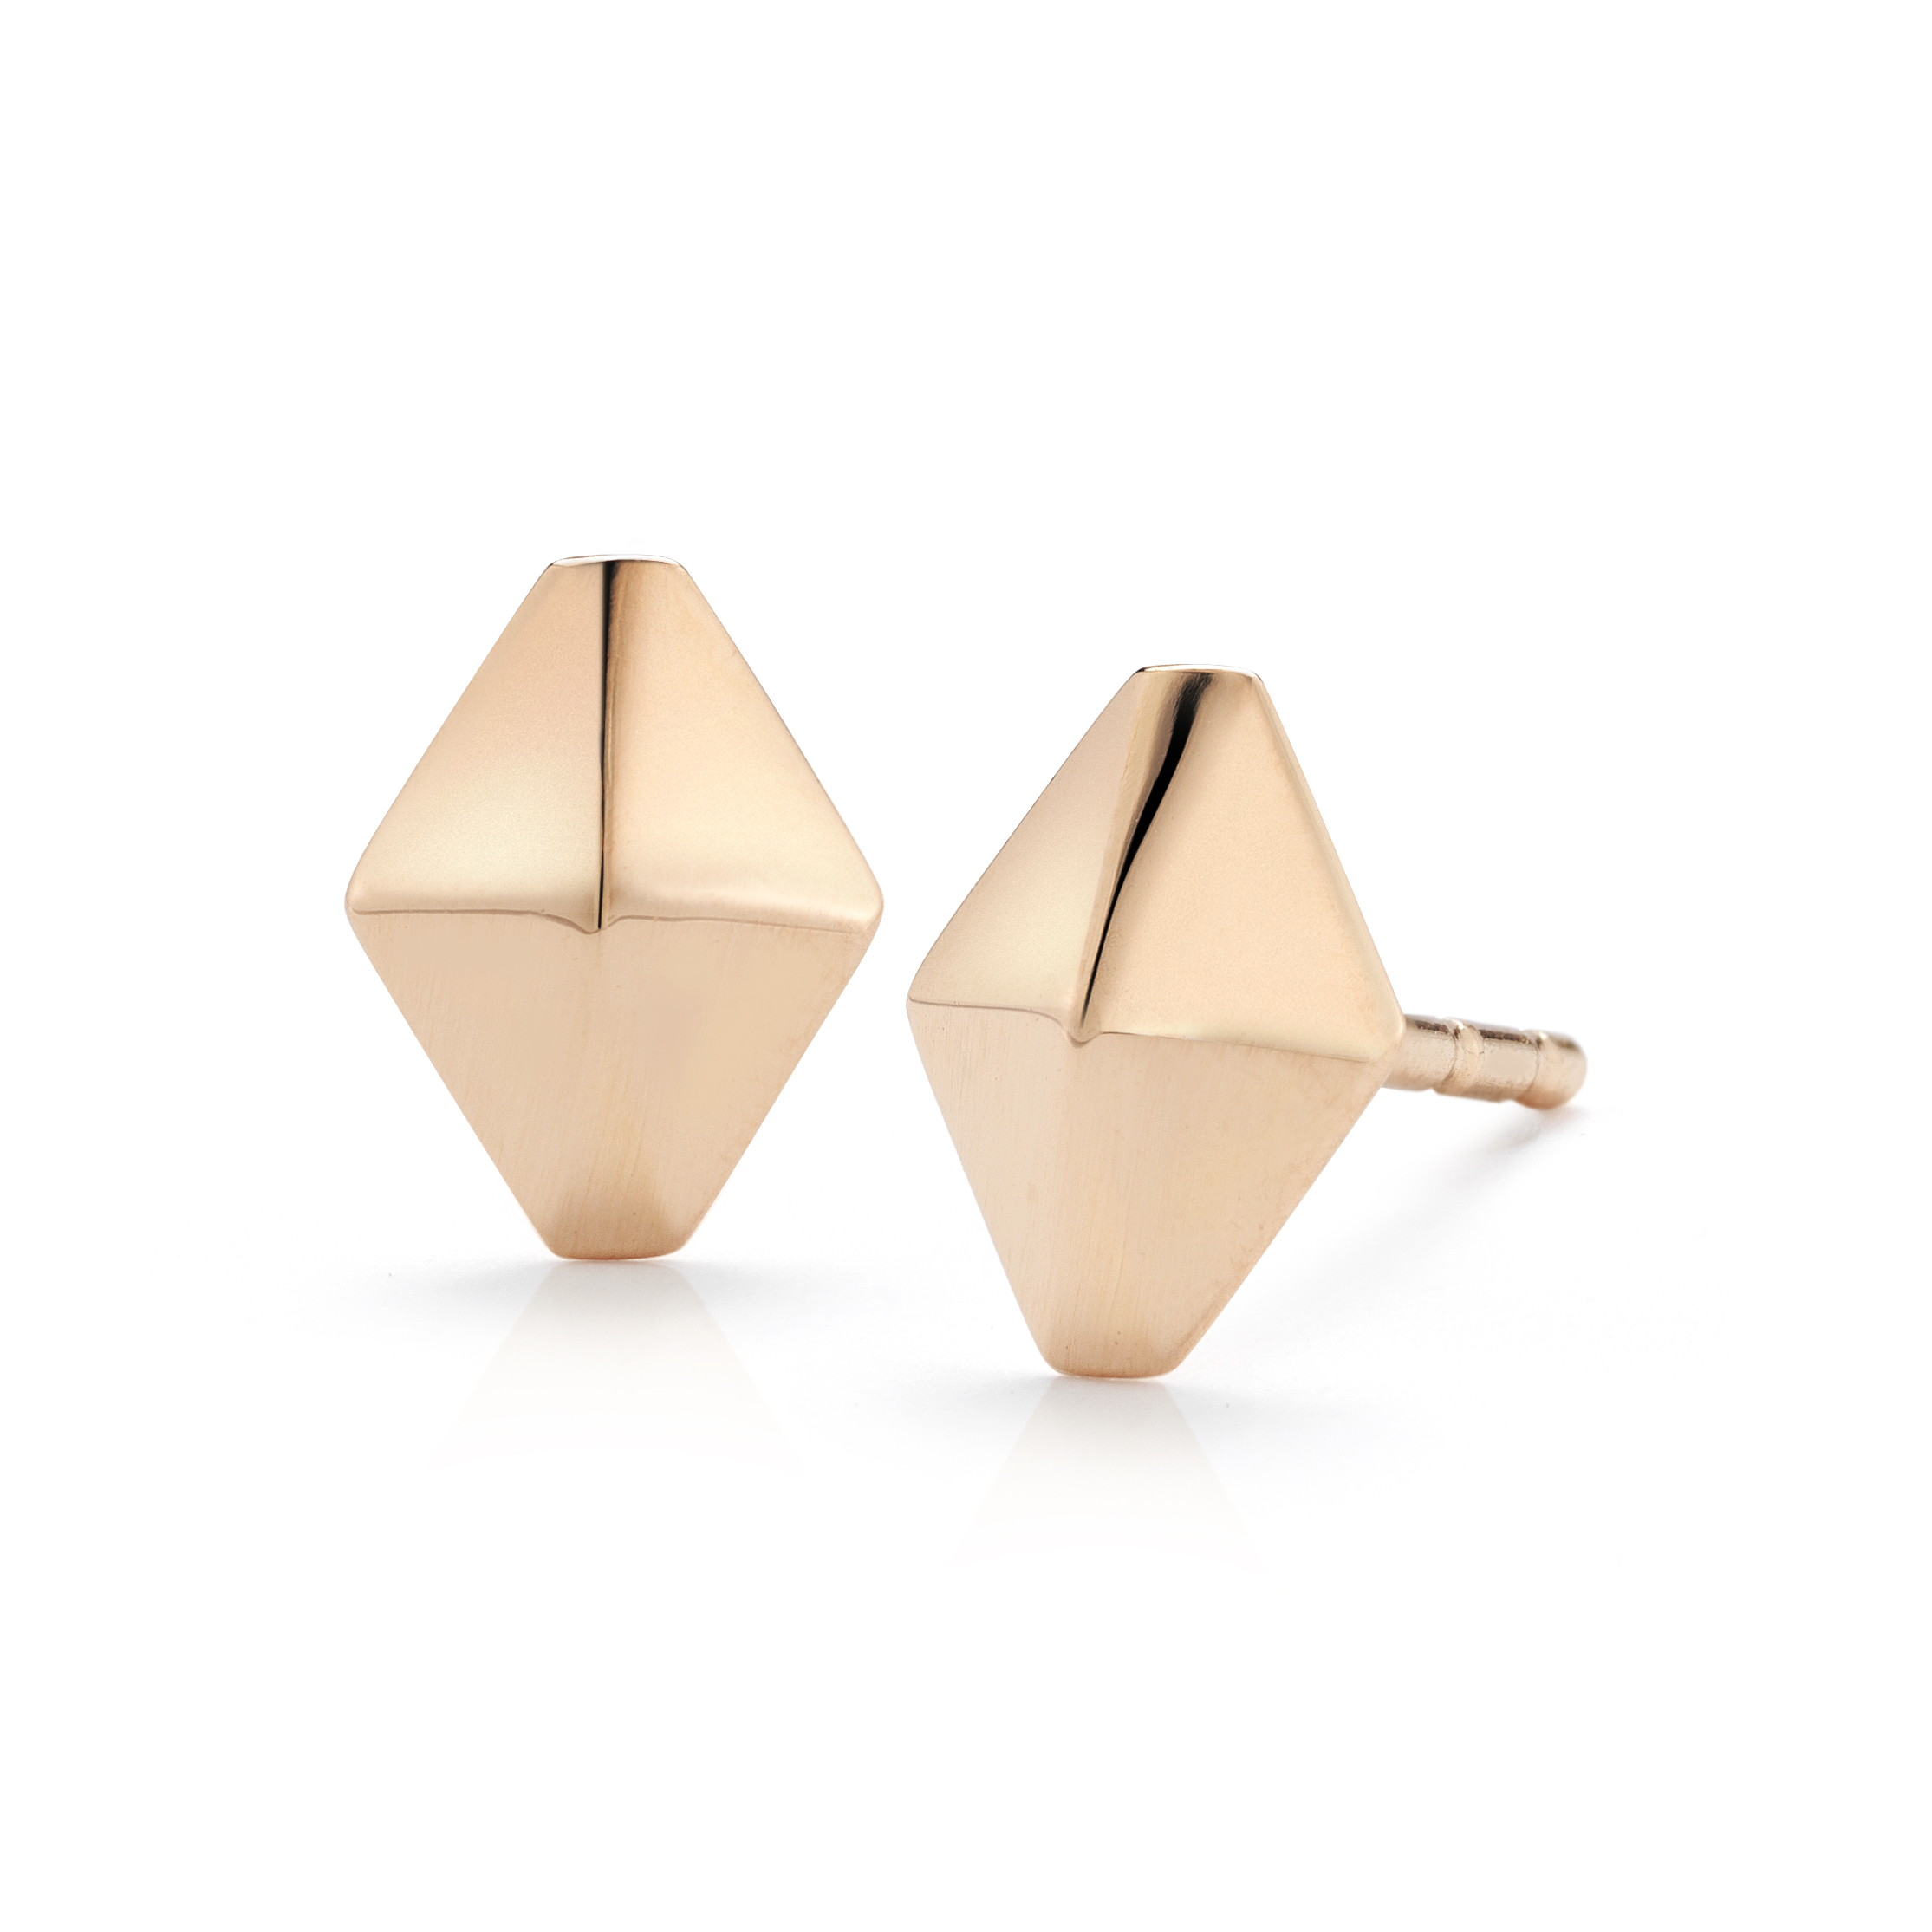 Walters Faith Sydney 18K Mini Origami Stud Earrings LoUdKMM